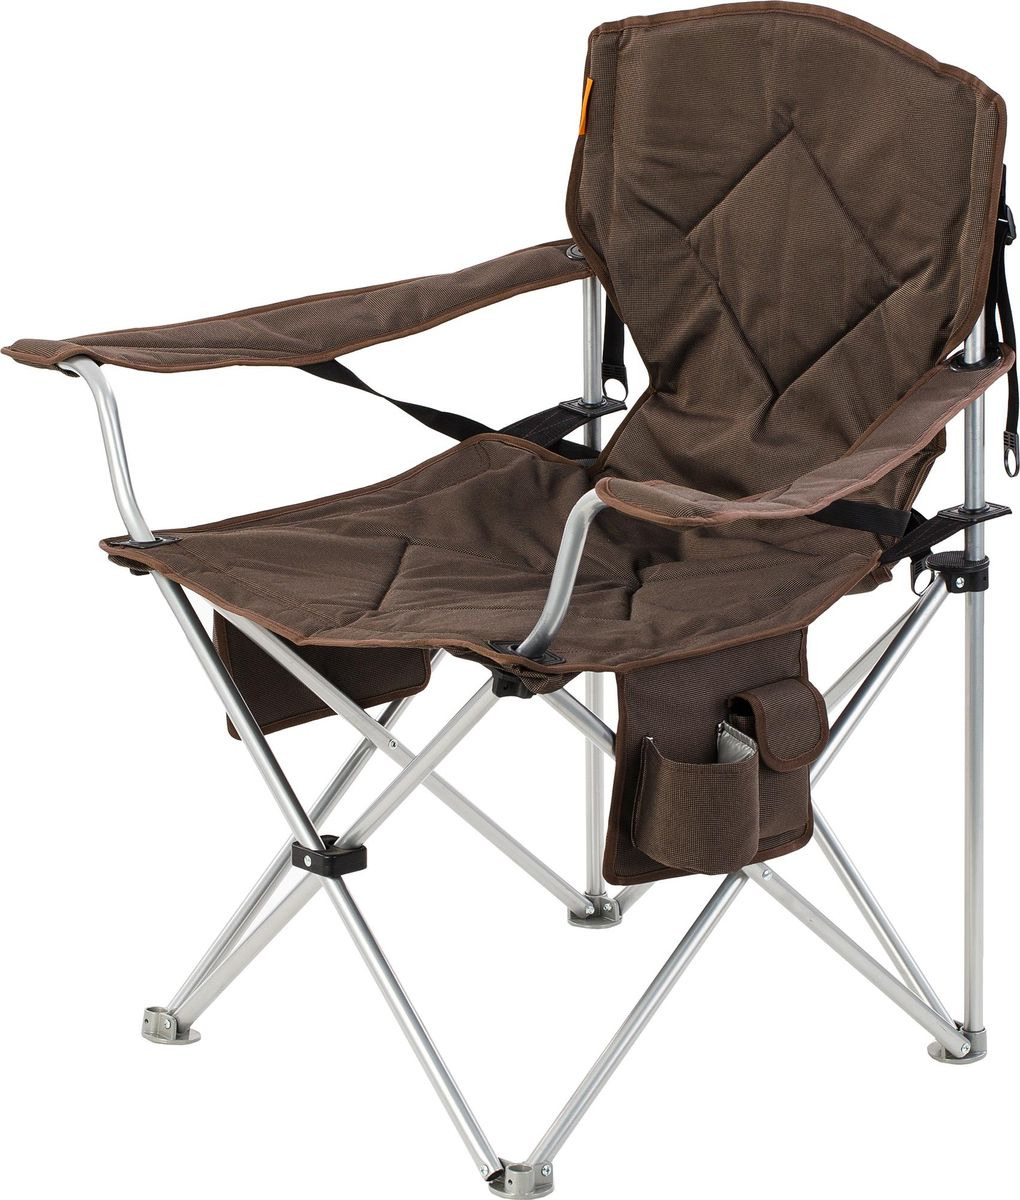 Кресло кемпинговое Outventure Camping Chair With Adjustable Backrest, IE402T10, бежевый